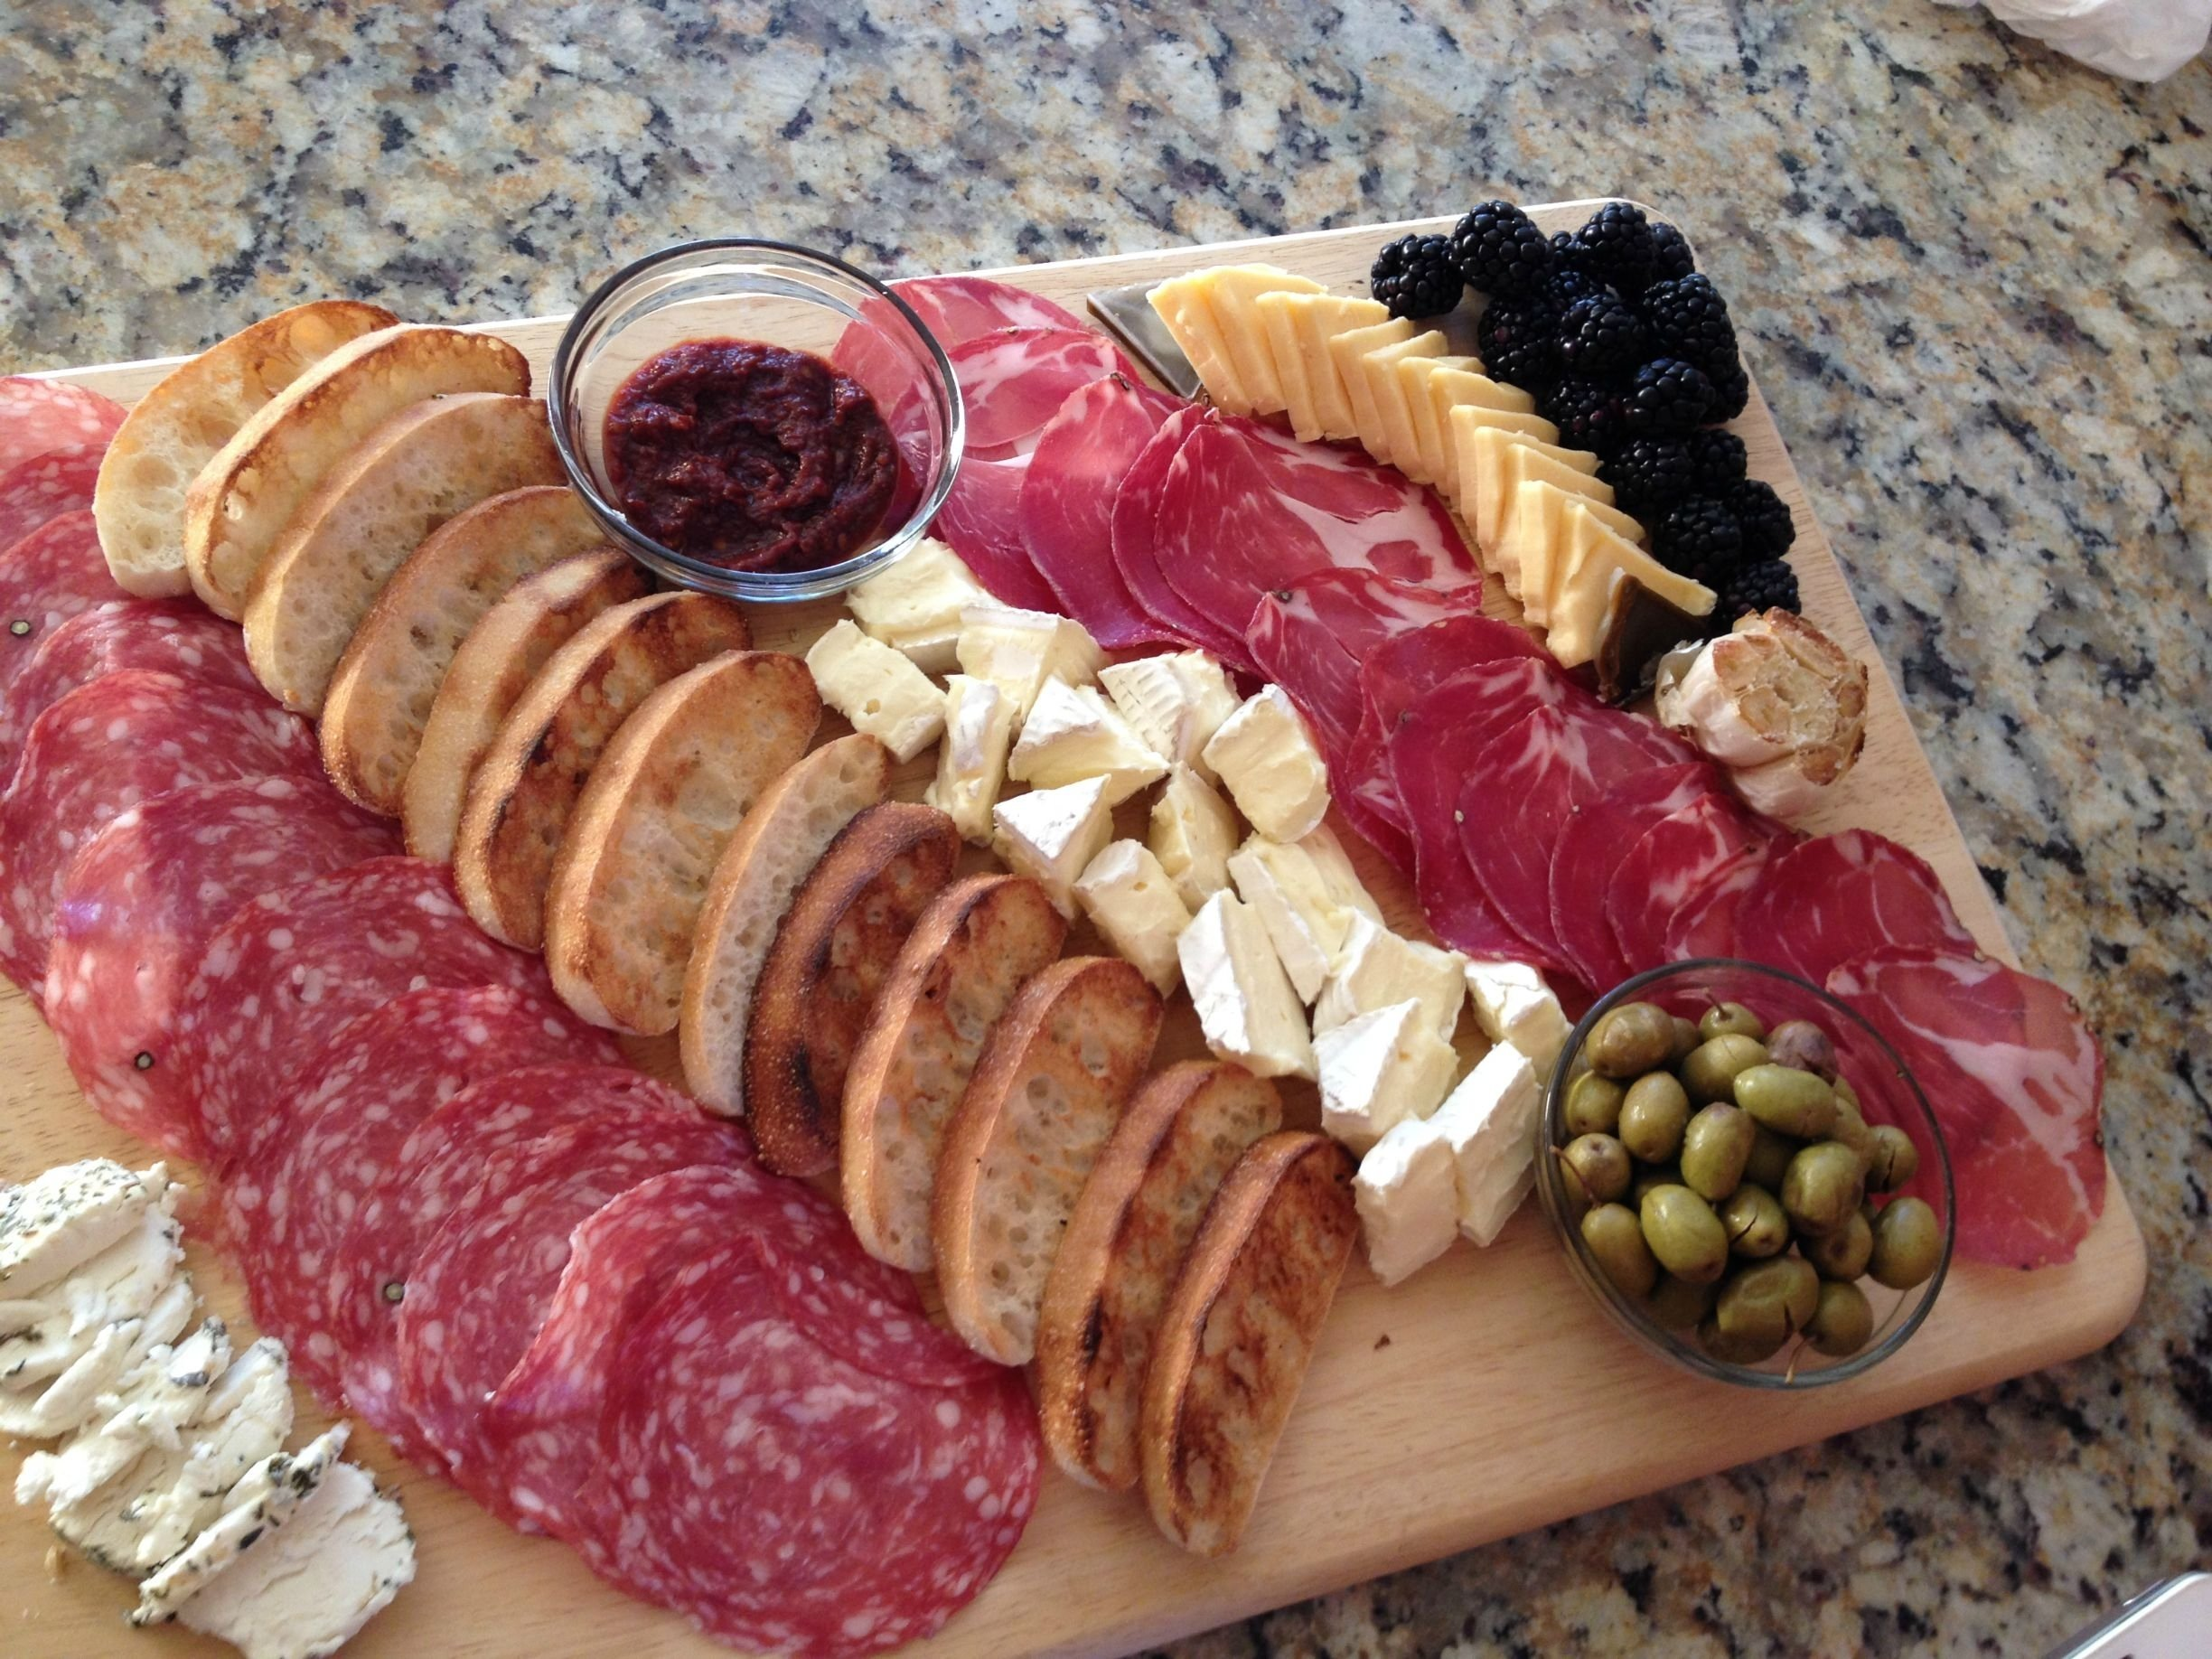 10 Gorgeous Cheese And Meat Platter Ideas a meat and cheese platter i made to celebrate the end of finals food 1 2020